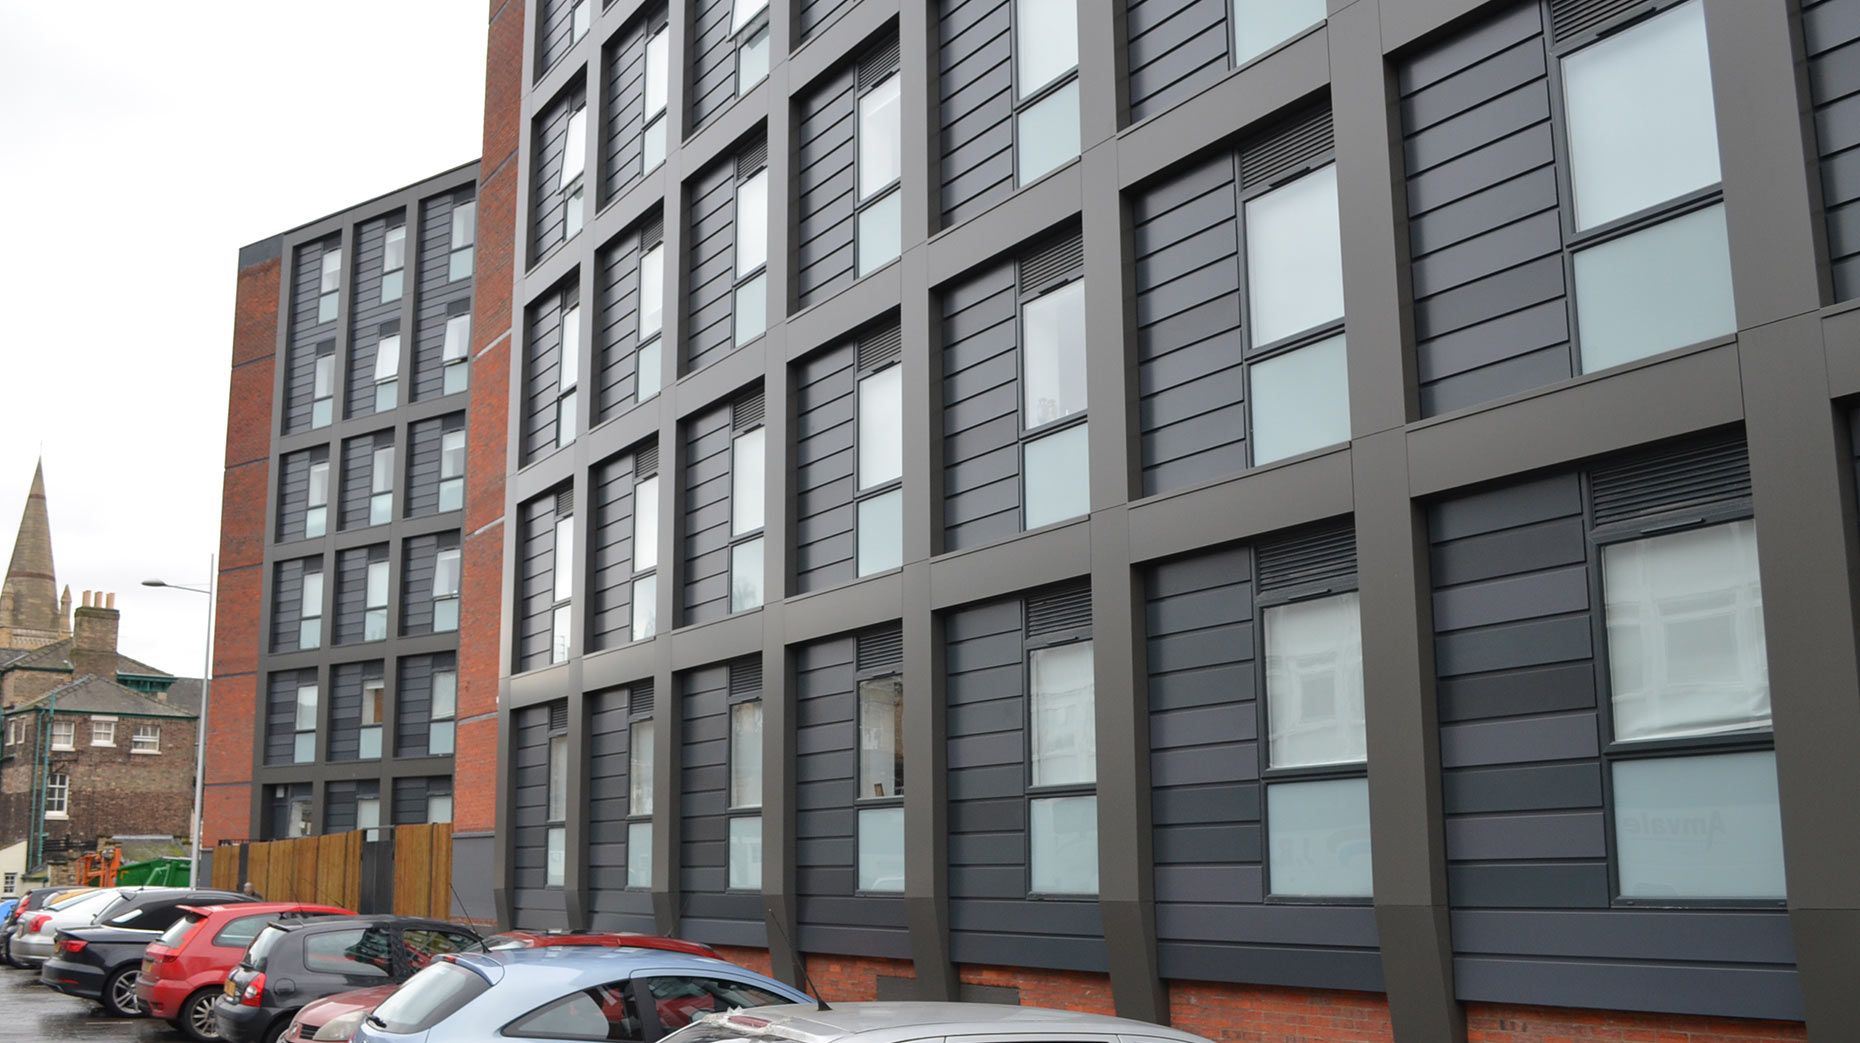 The student sadly died at Danesgate House student accommodation in the city centre. Photo: The Lincolnite